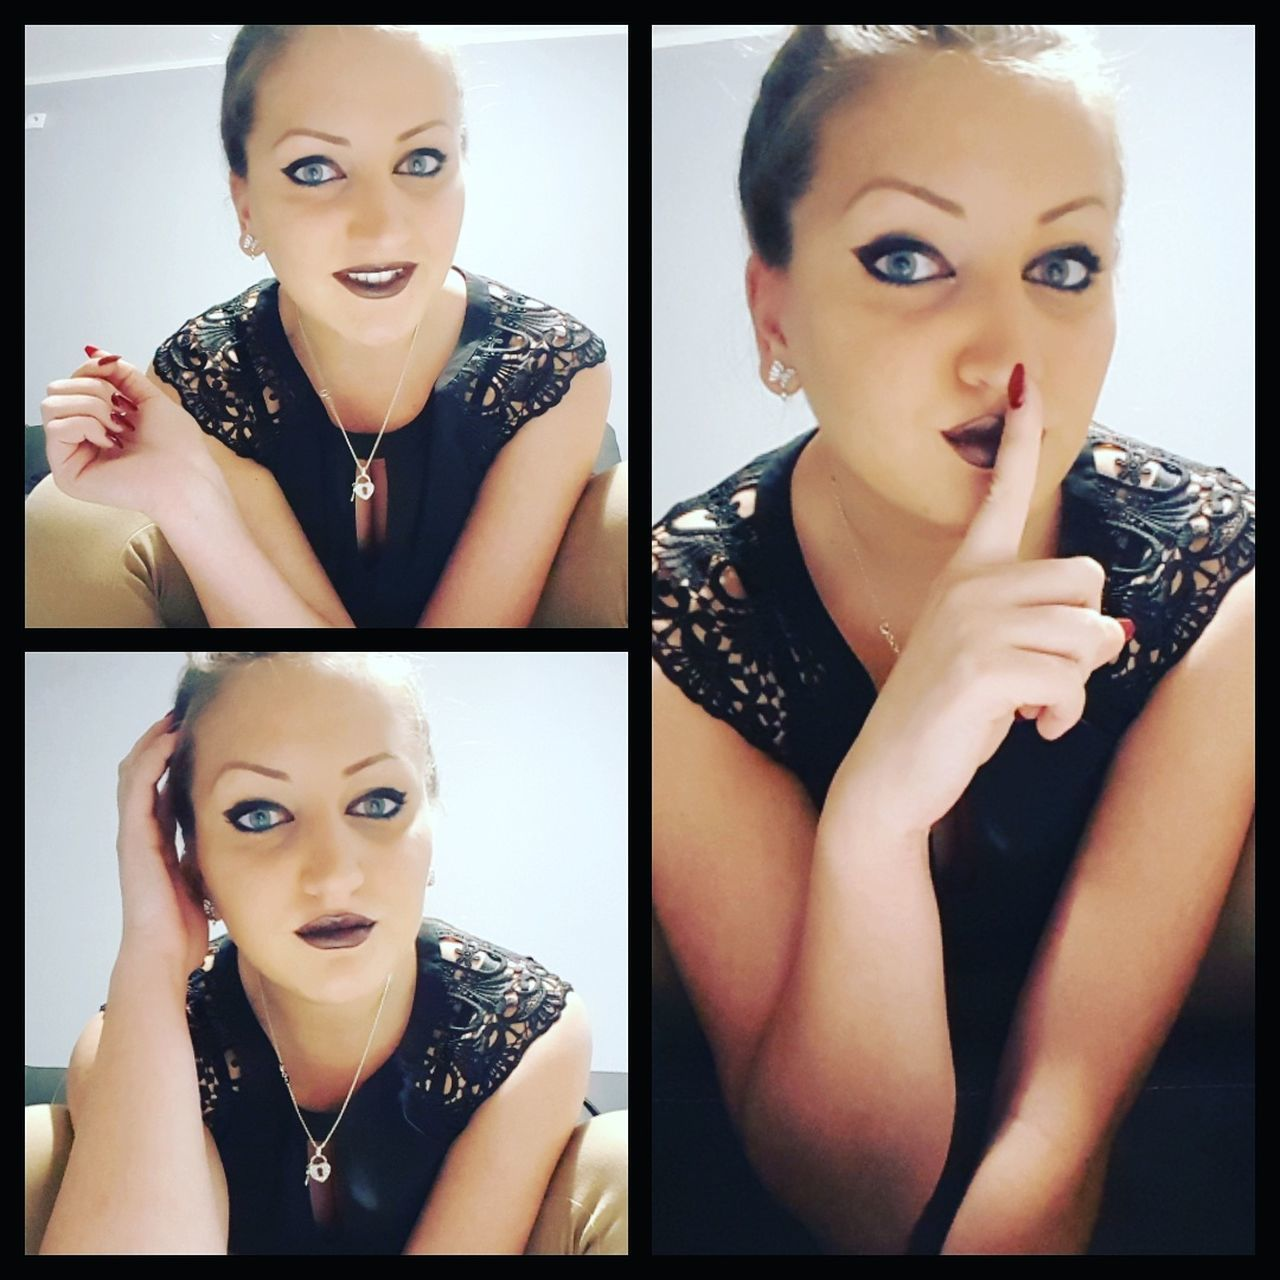 Me Beautiful Woman Beauty Young Women Blue Eyes❤ New Life & New Hope Im Back :) Lovetotakepics Lol :) How I Look? Live, Love, Laugh I Wanna Be Forever Young.